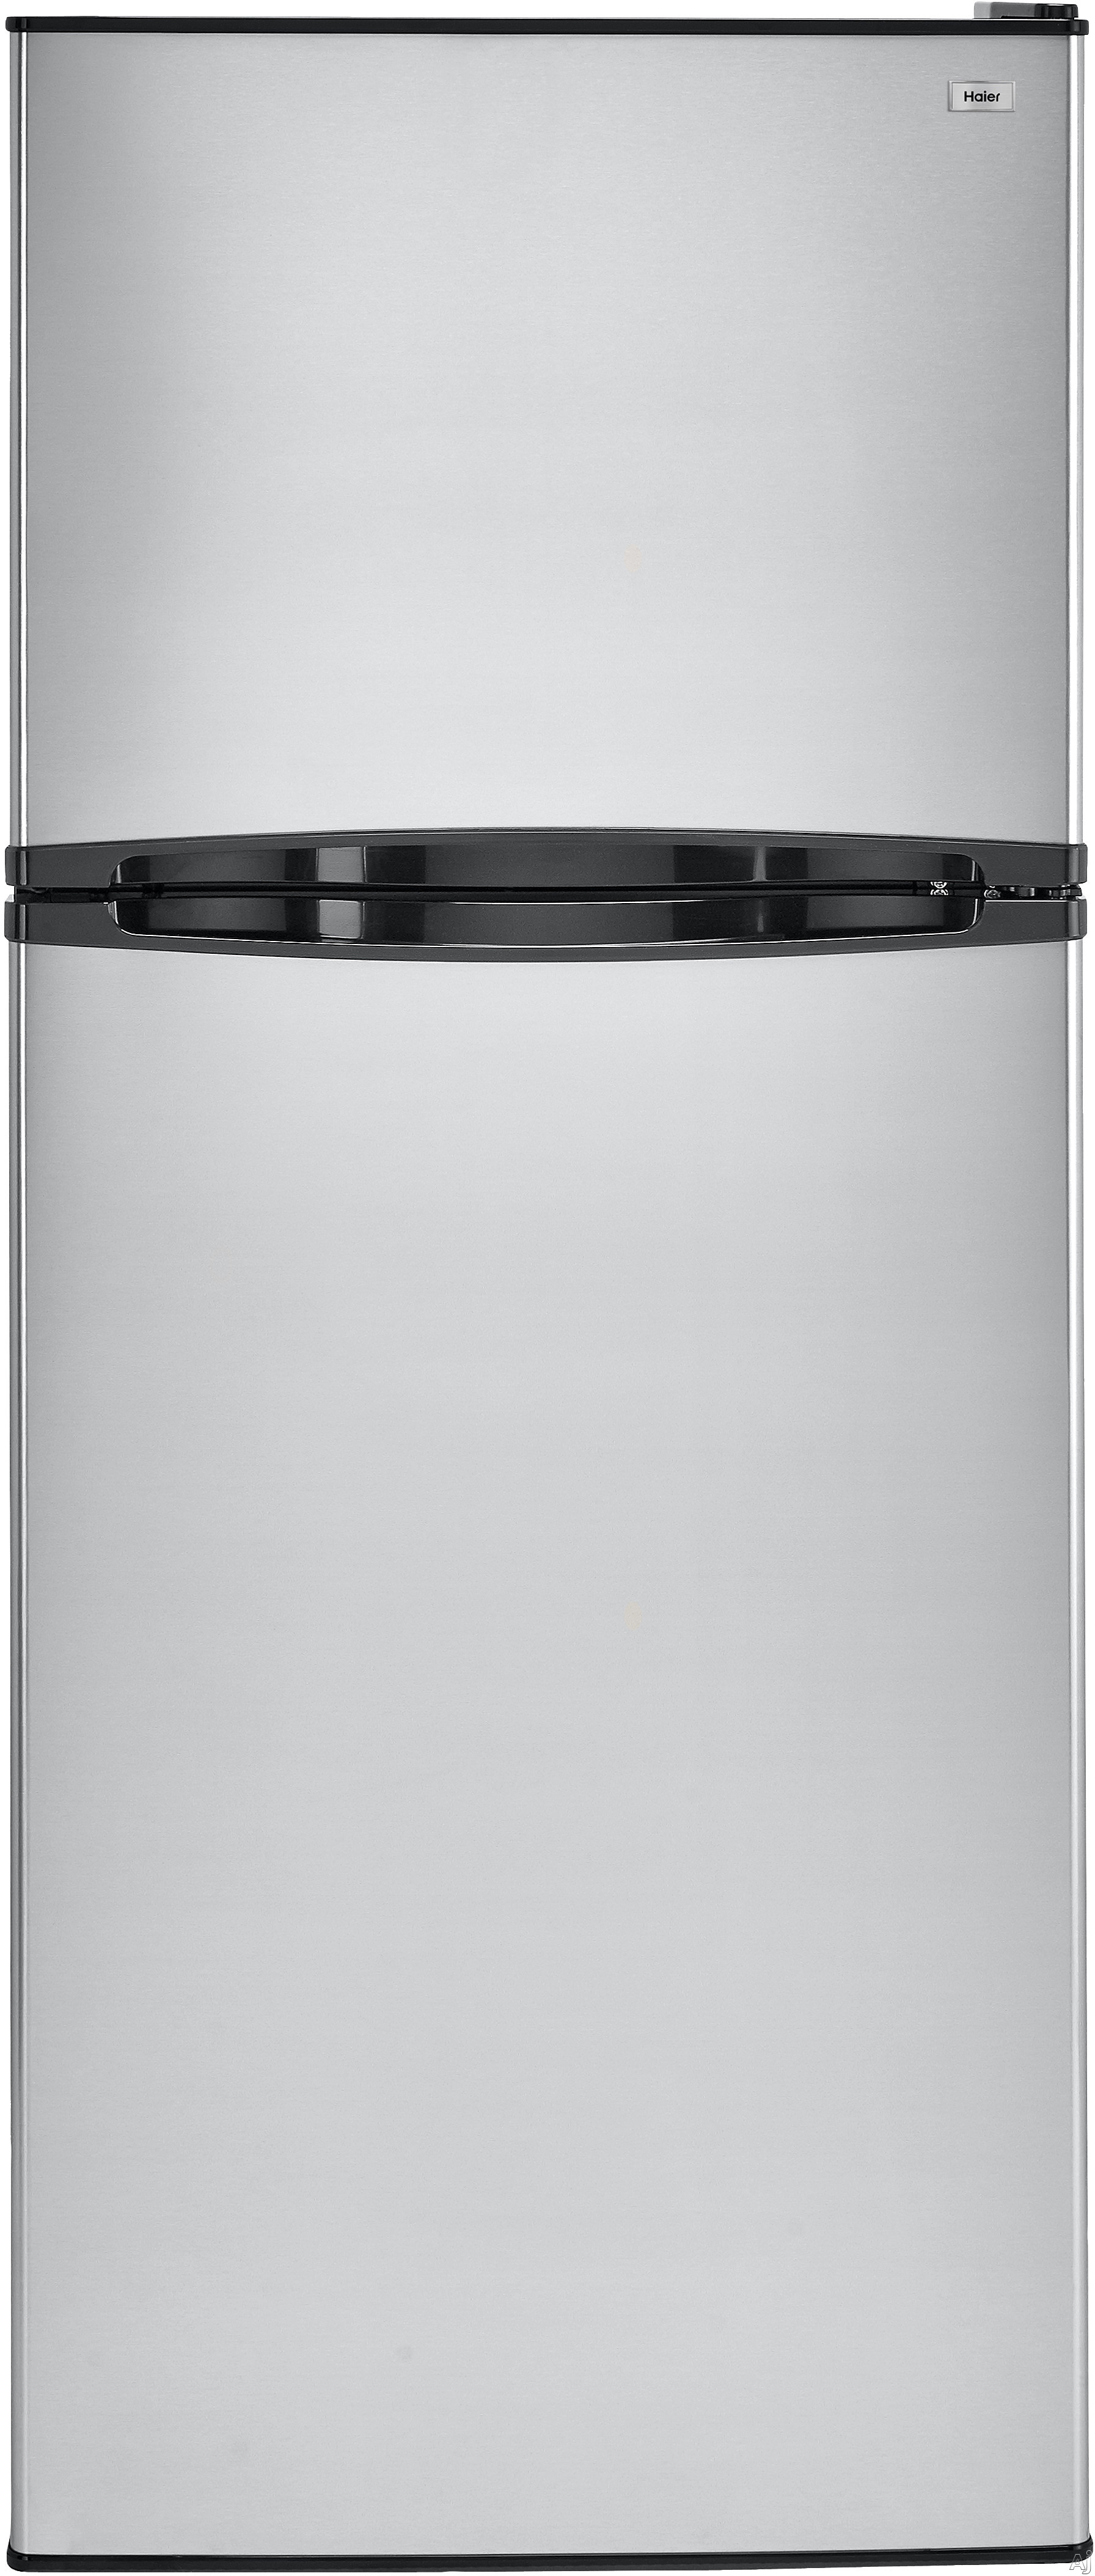 Haier HA10TG21 98 cu ft Top Mount Refrigerator with 2 Spill Proof Glass Shelves Humidity Controlled Crisper 3 Door Bins 1 Freezer Shelf 2 Freezer Door Bins and ADA Compliance